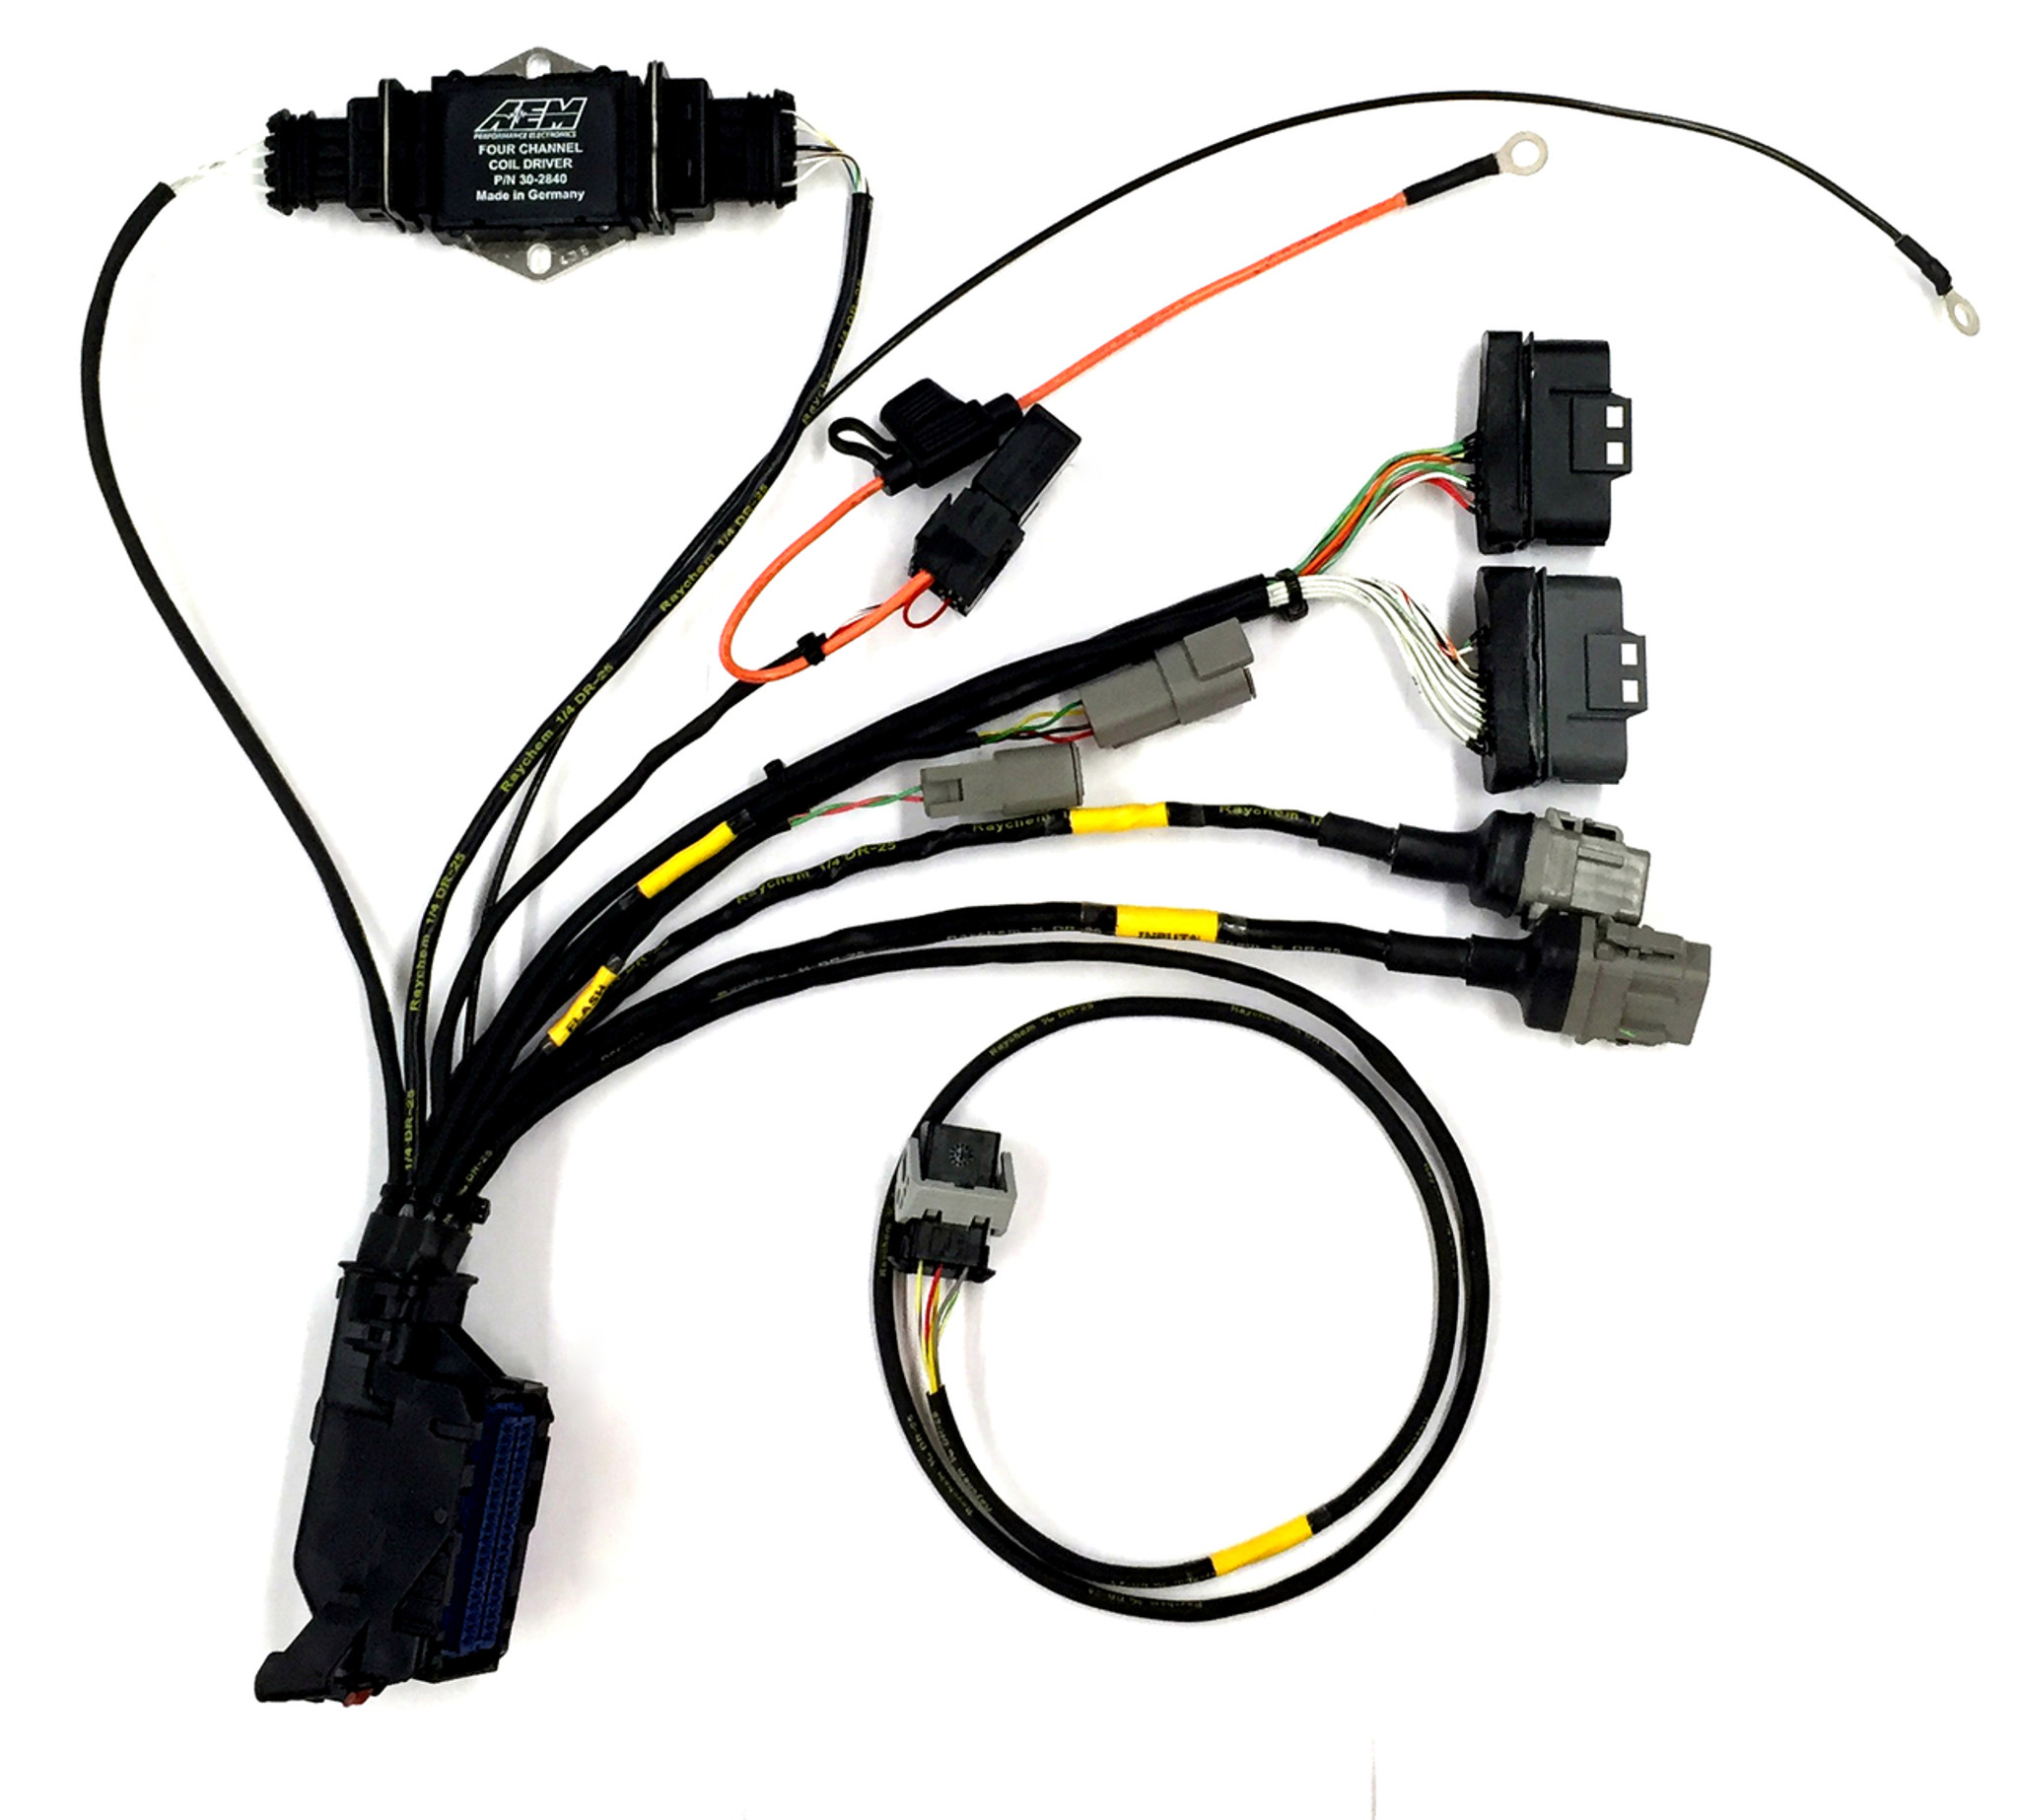 small resolution of infinity ecu plug and play wiring harness